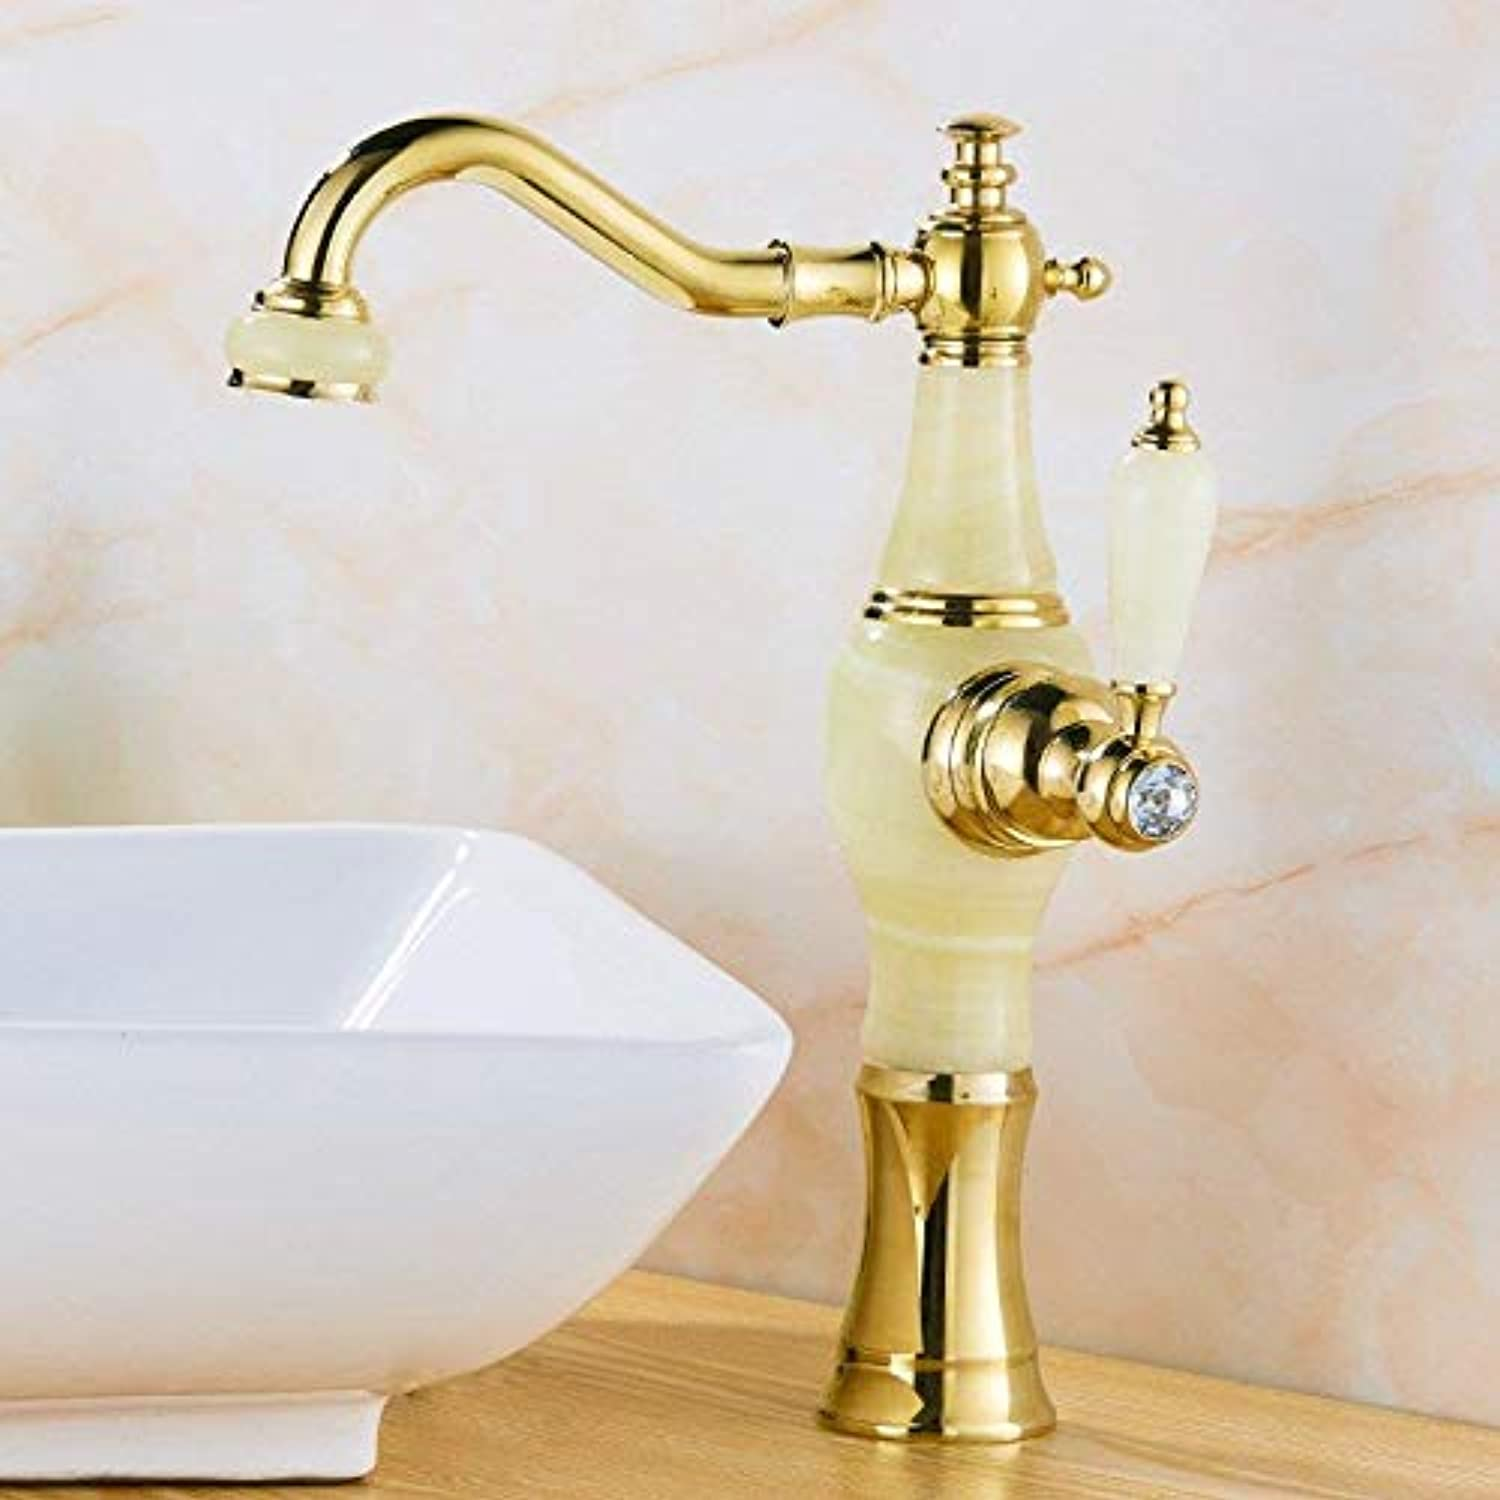 Taps Faucet Hot and Cold Faucet Bathroom Above Counter Basin Copper Hot and Cold Basin Faucet Bathroom Household Washbasin Faucet golden White Jade?High?3?1?cm